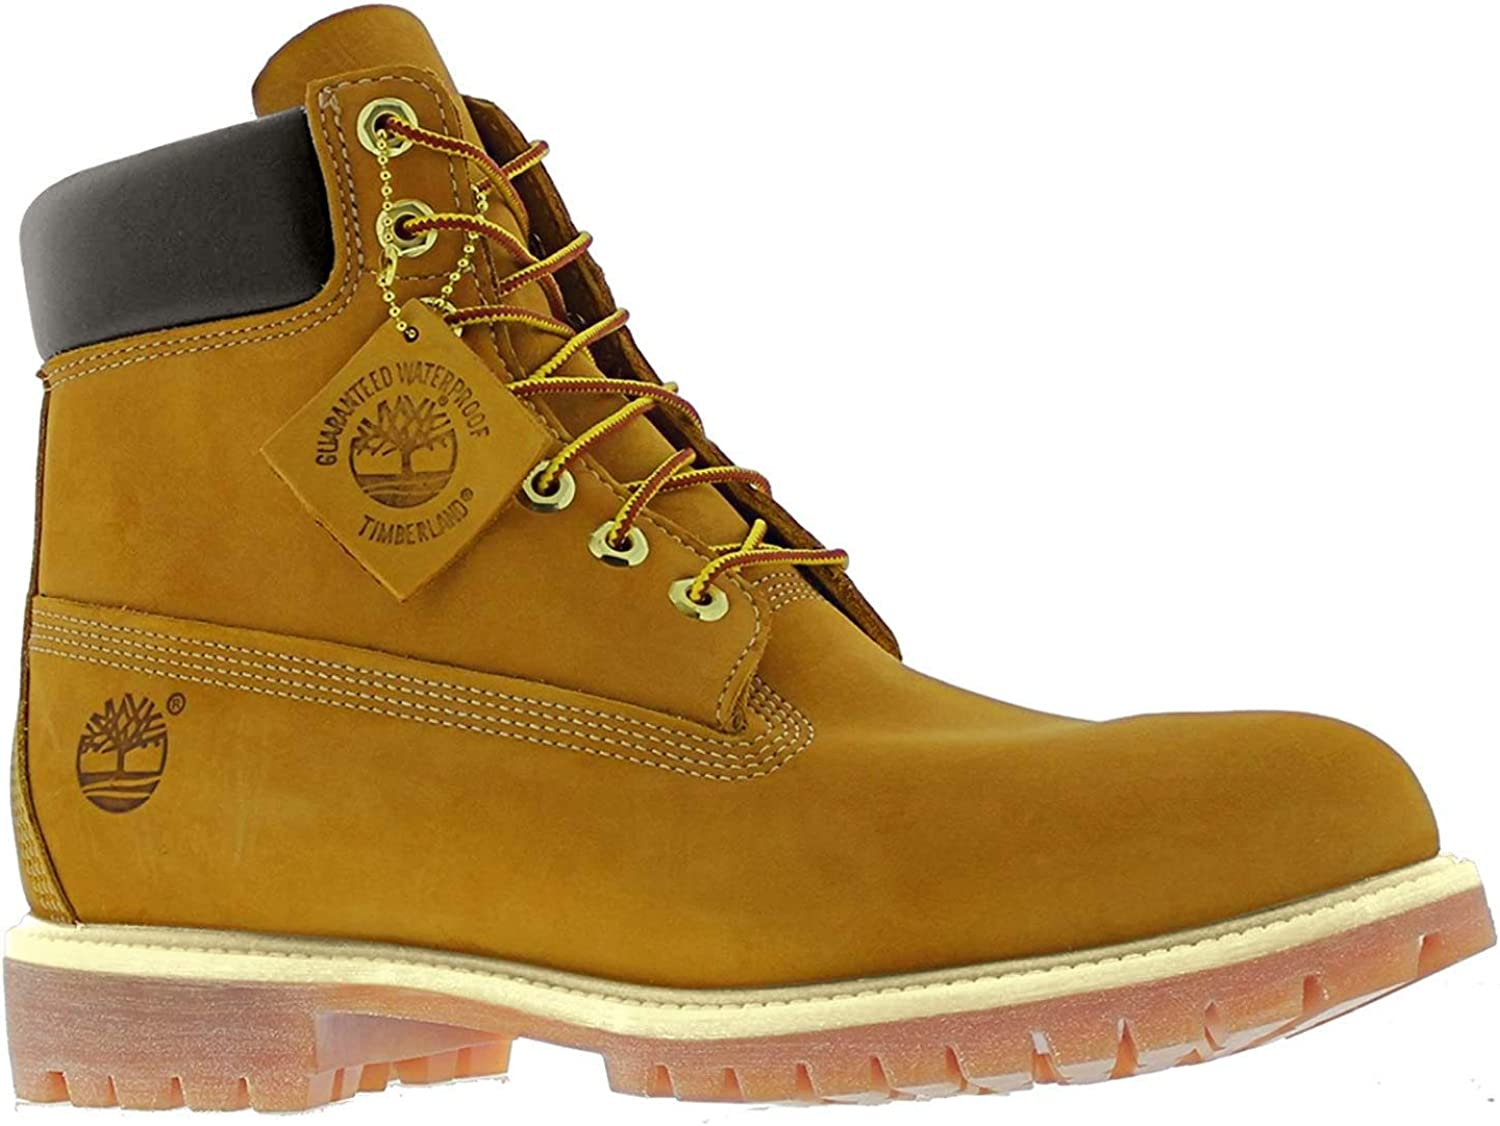 excellent quality new release cute Mens Timberland Premium Classic Leather Original Lace Up Boots 7-12